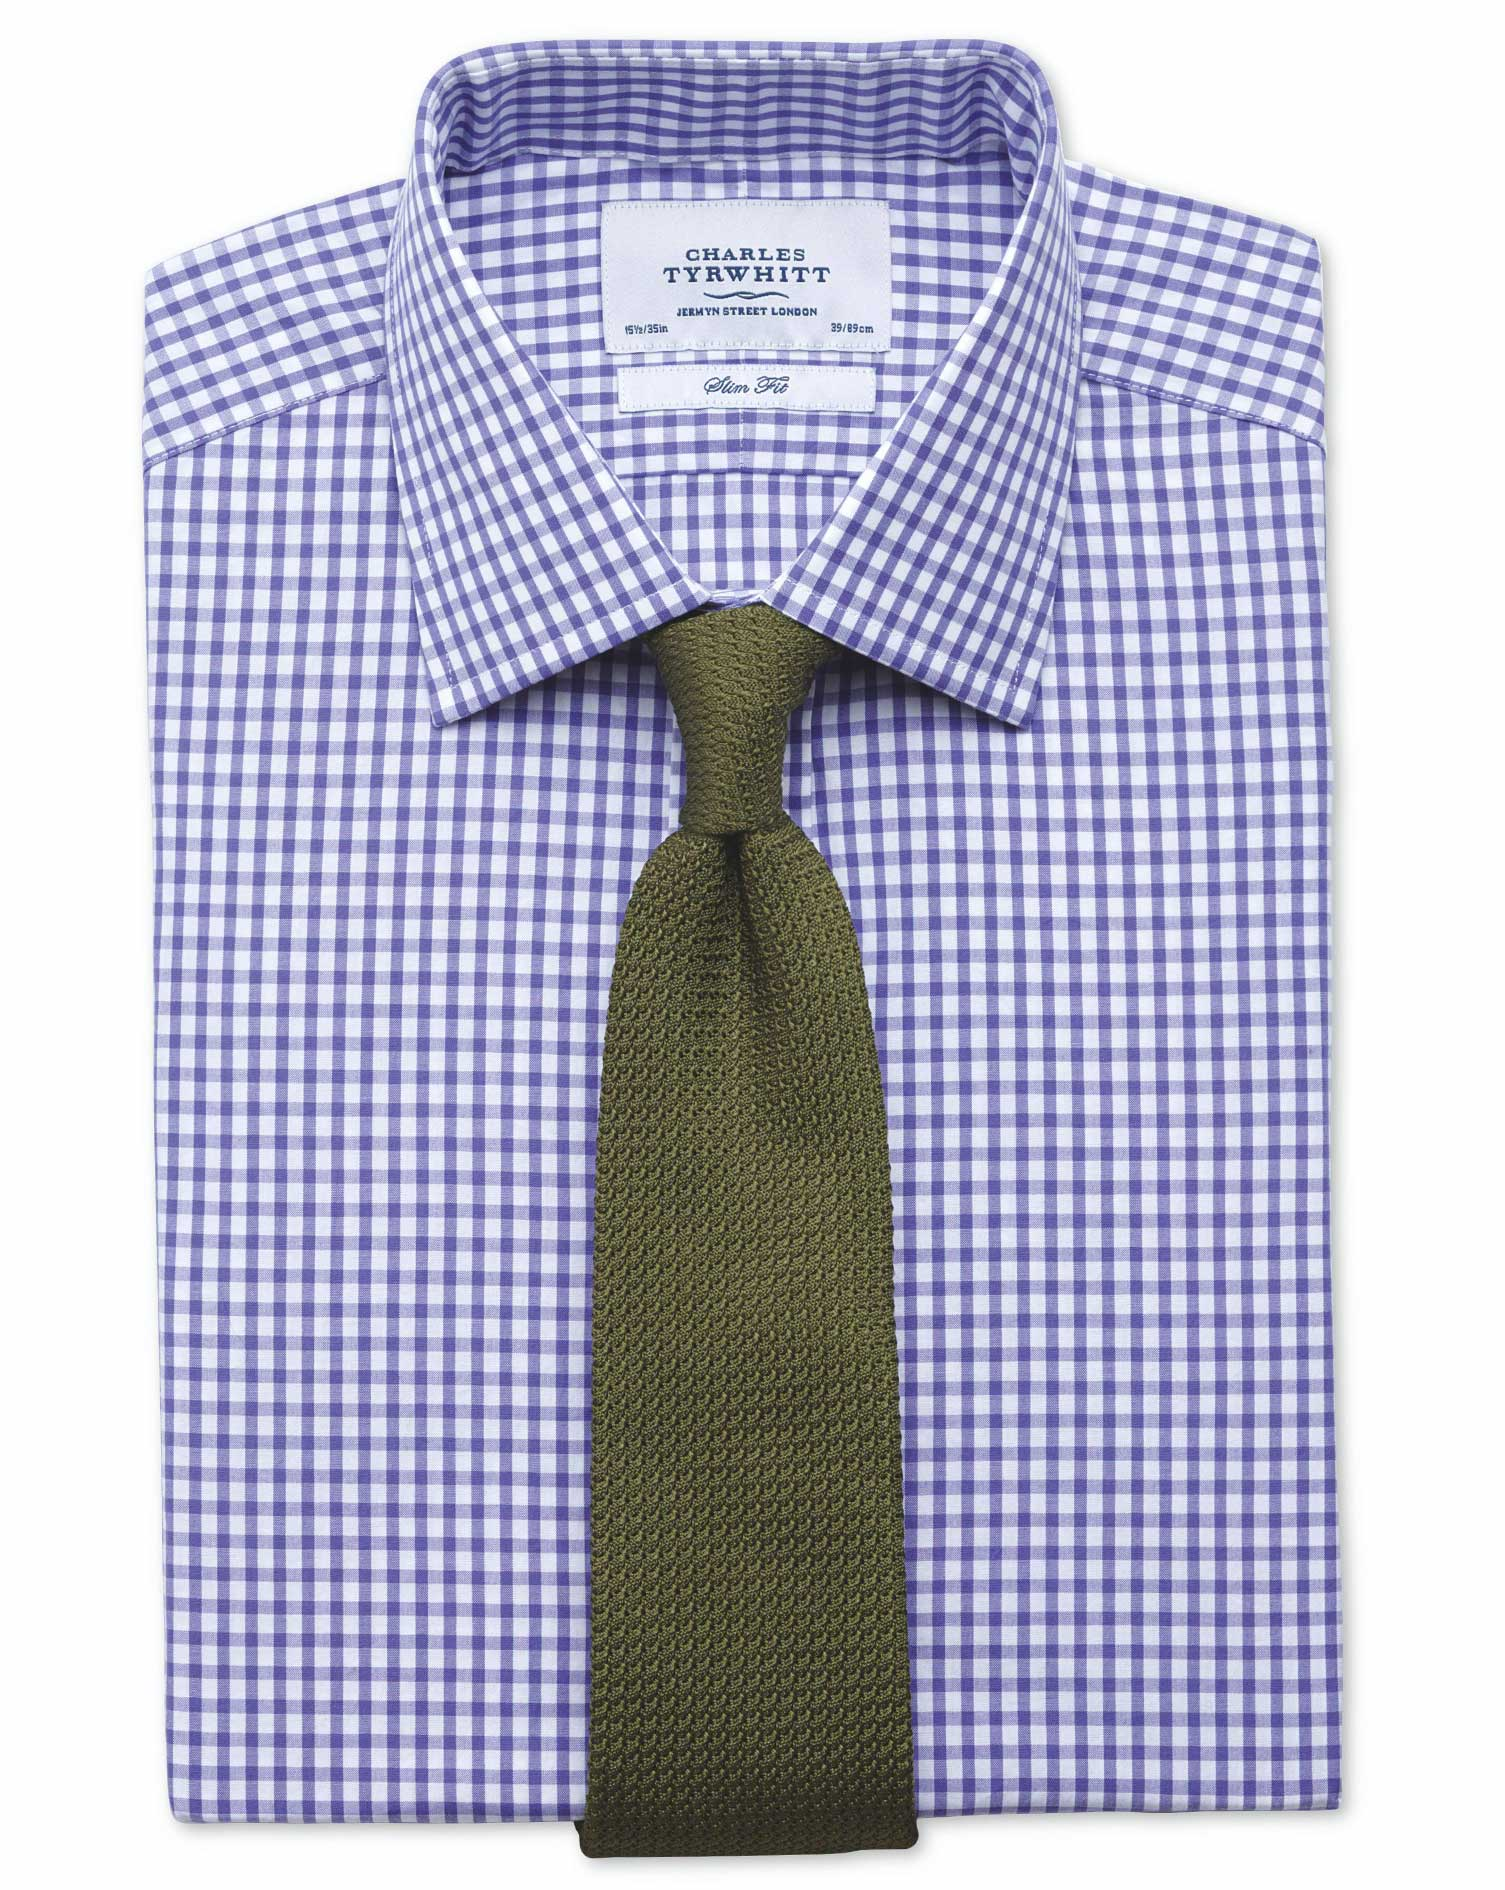 Slim Fit Gingham Purple Cotton Formal Shirt Double Cuff Size 15/35 by Charles Tyrwhitt